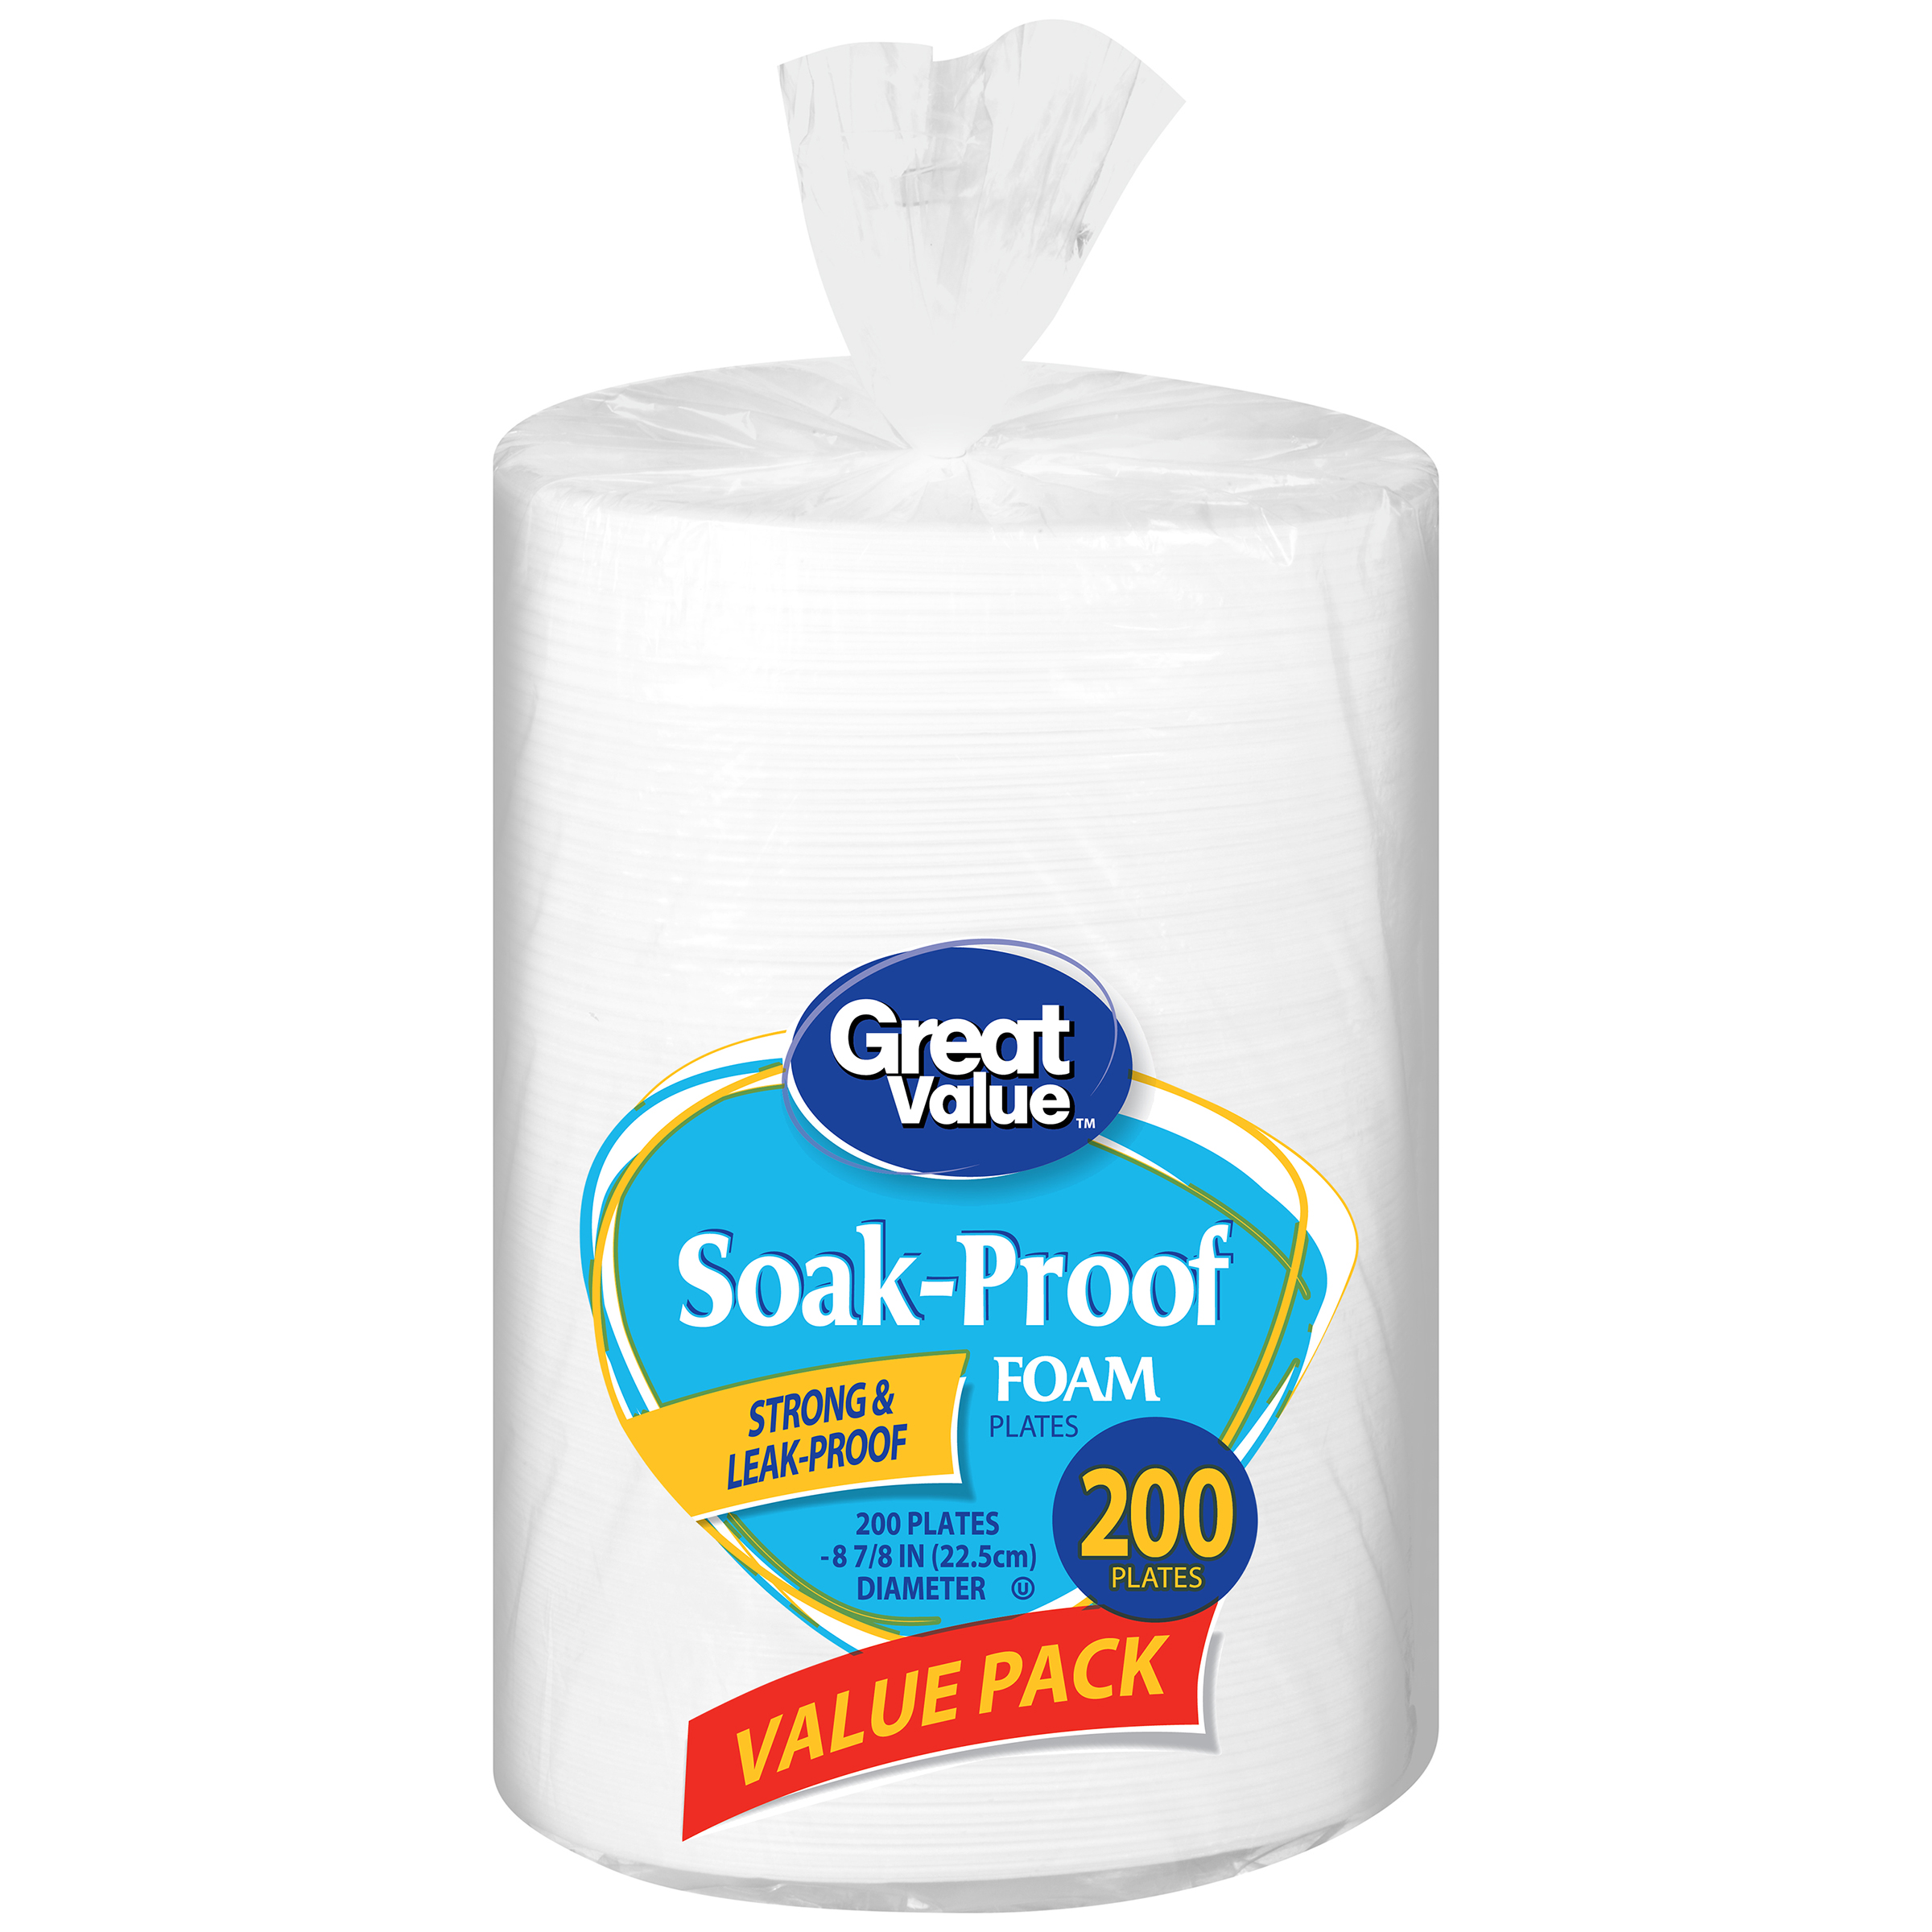 "Great Value Soak-Proof Foam Plates, Value Pack, 8 7/8"", 200 Count"